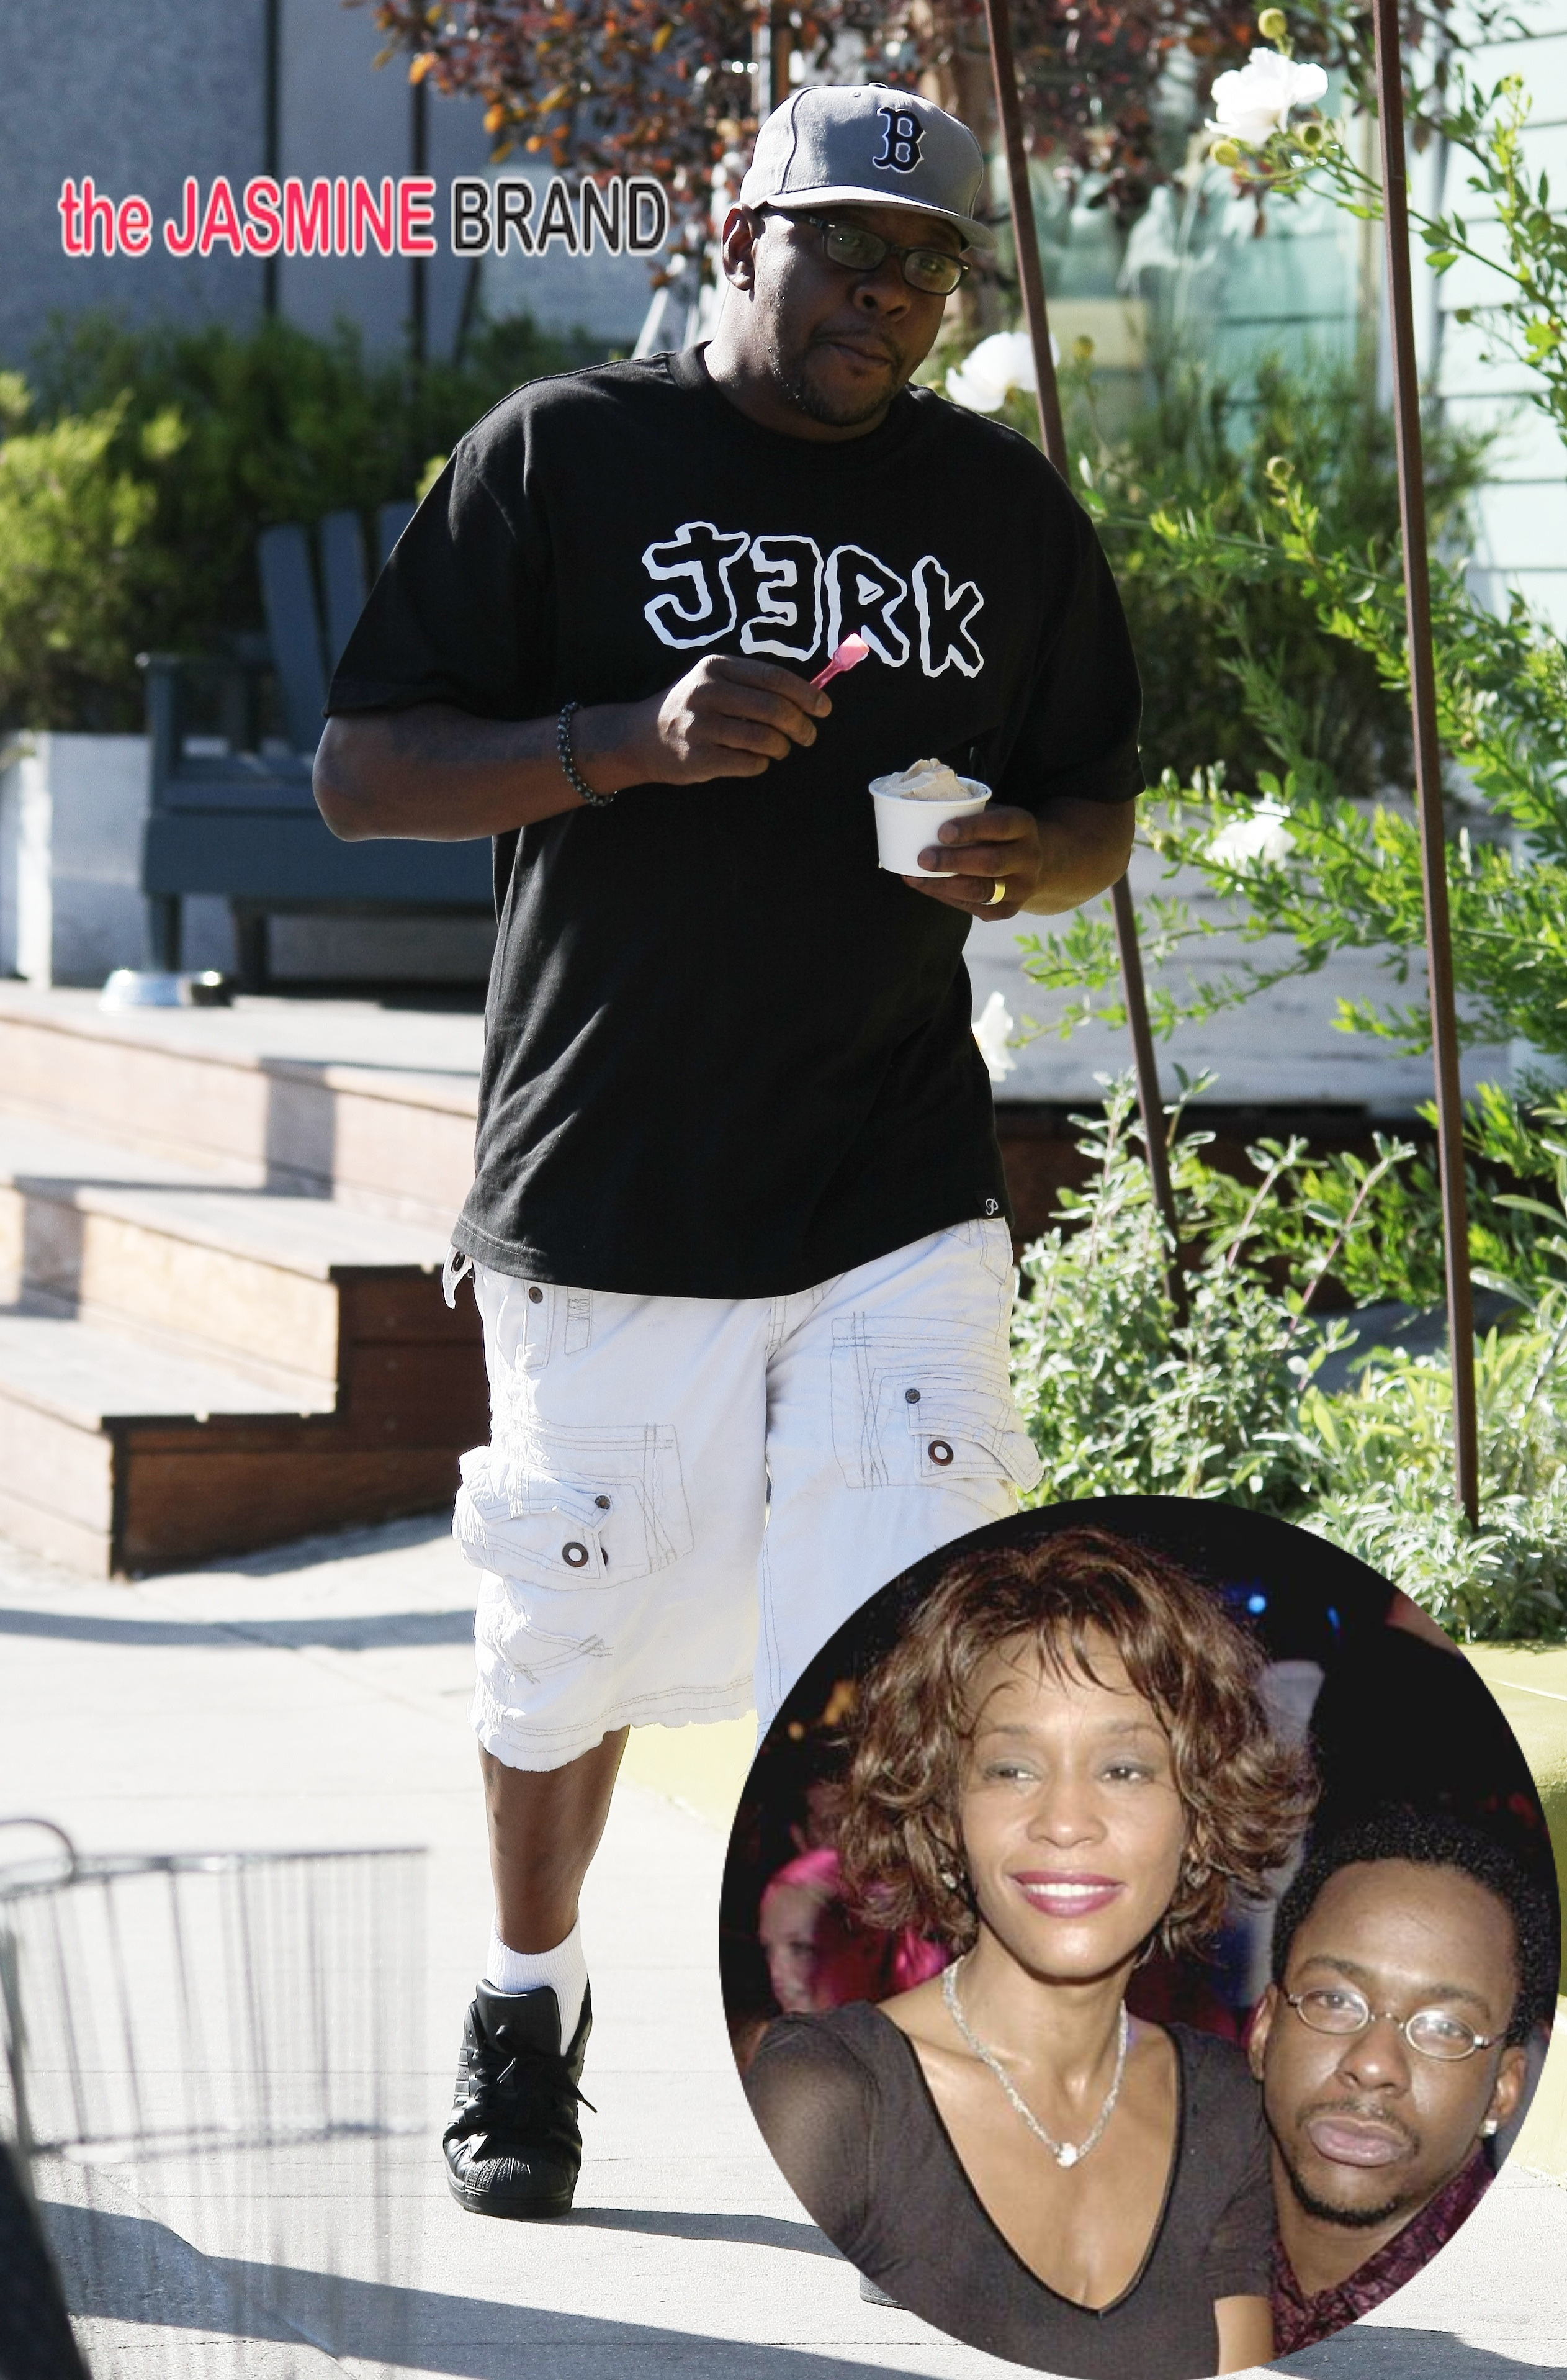 Singer Bobby Brown multitasks as he eats his yogurt and chats on the phone while walking on Abbot Kinney in Venice, CA